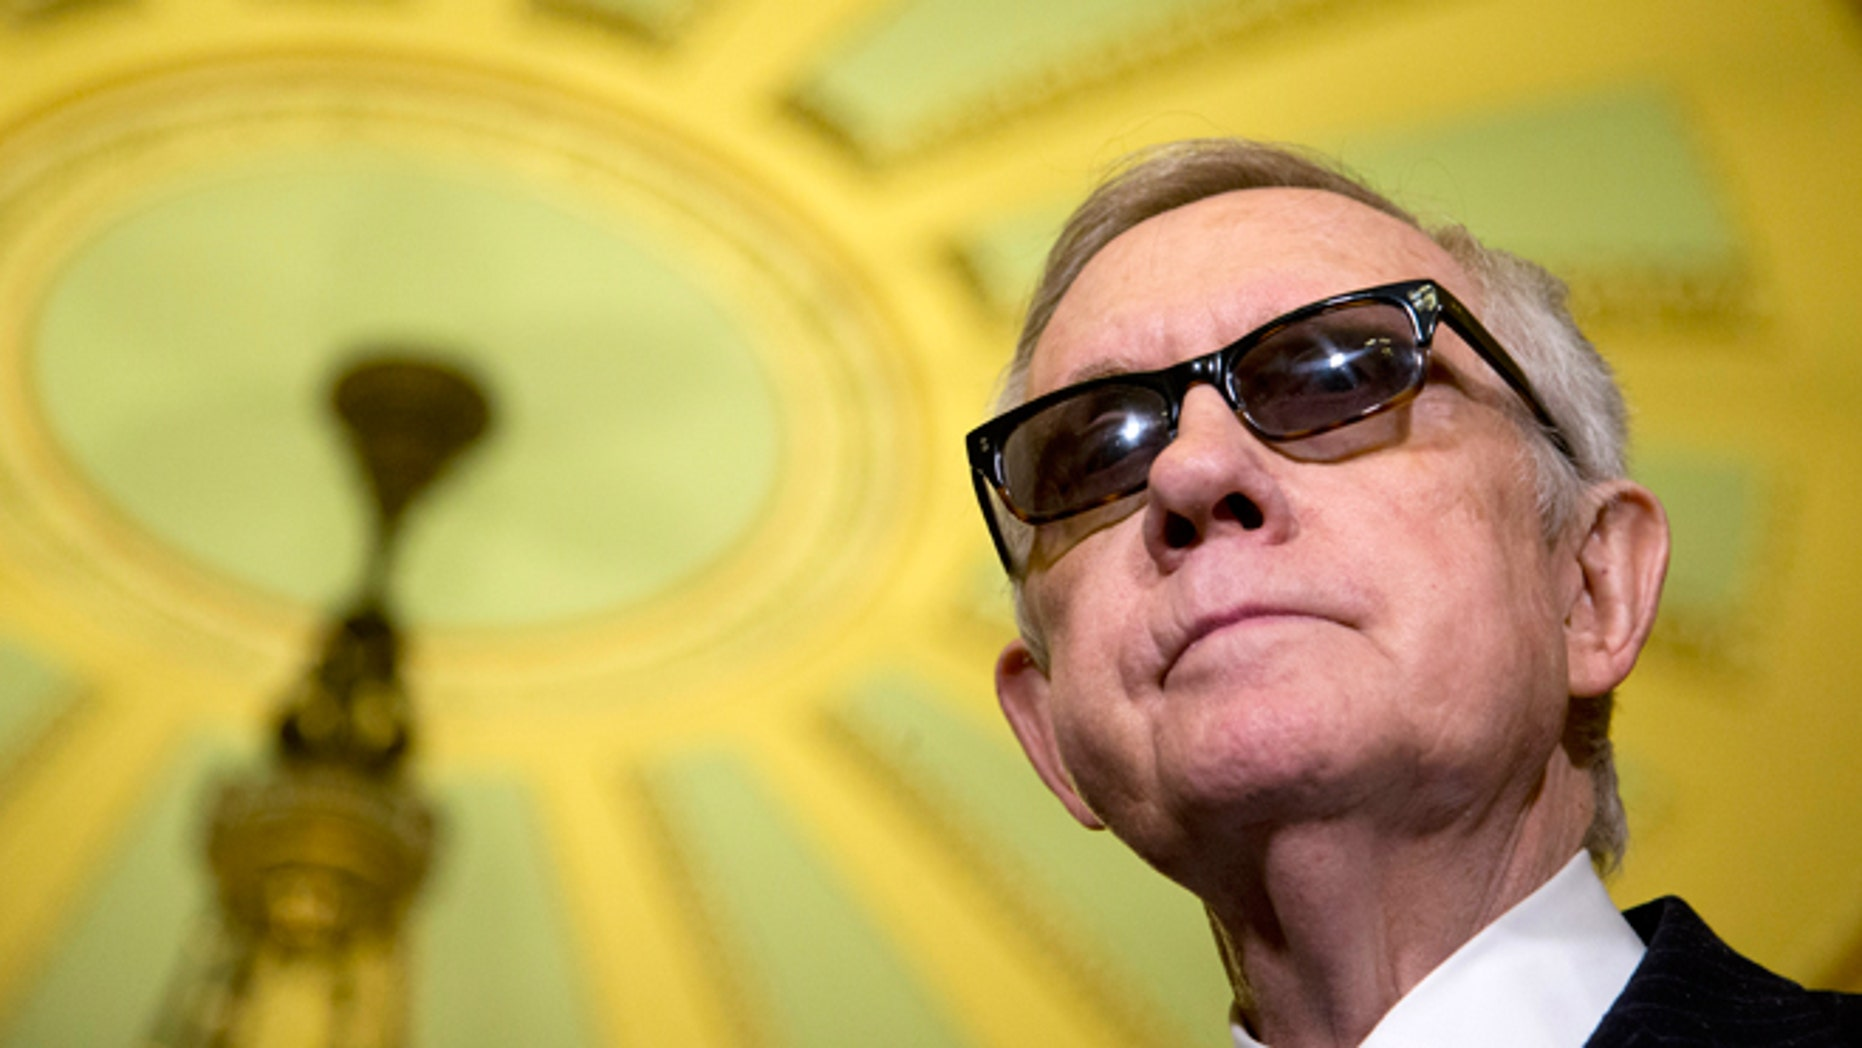 April 14, 2015: Senate Minority Leader Harry Reid of Nev. pauses during a news conference on Capitol Hill in Washington following a Senate policy luncheon.